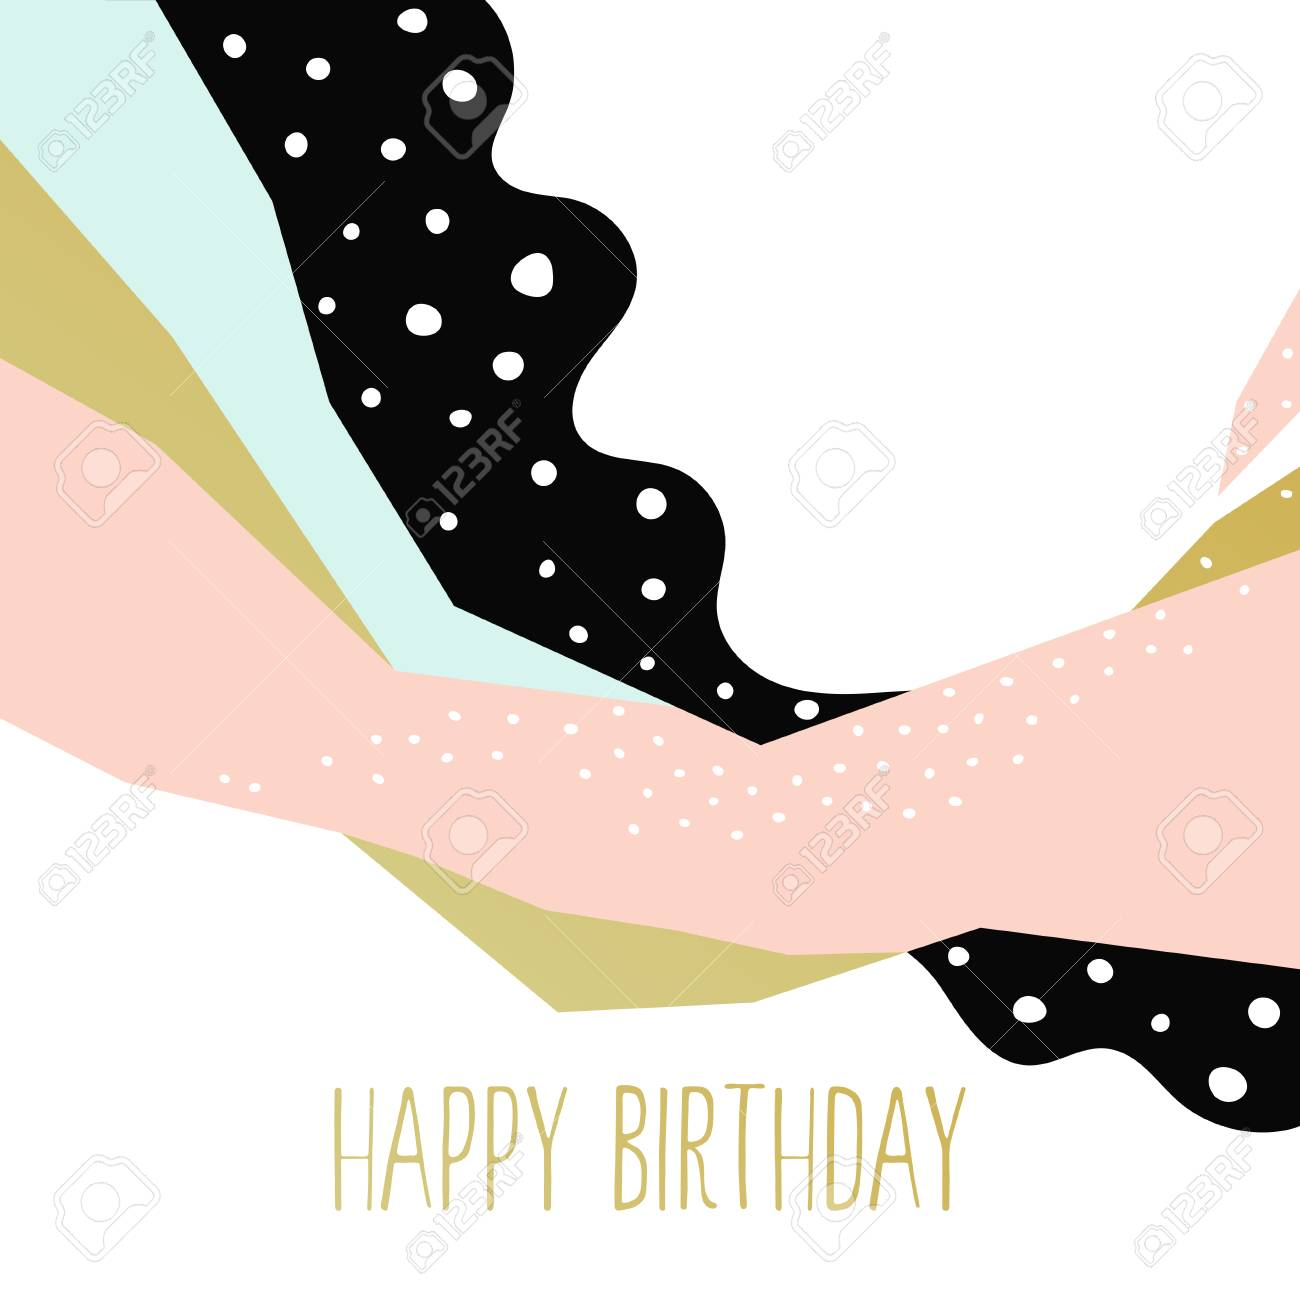 Happy Birthday Card. Contemporary Card Design With Abstract ...